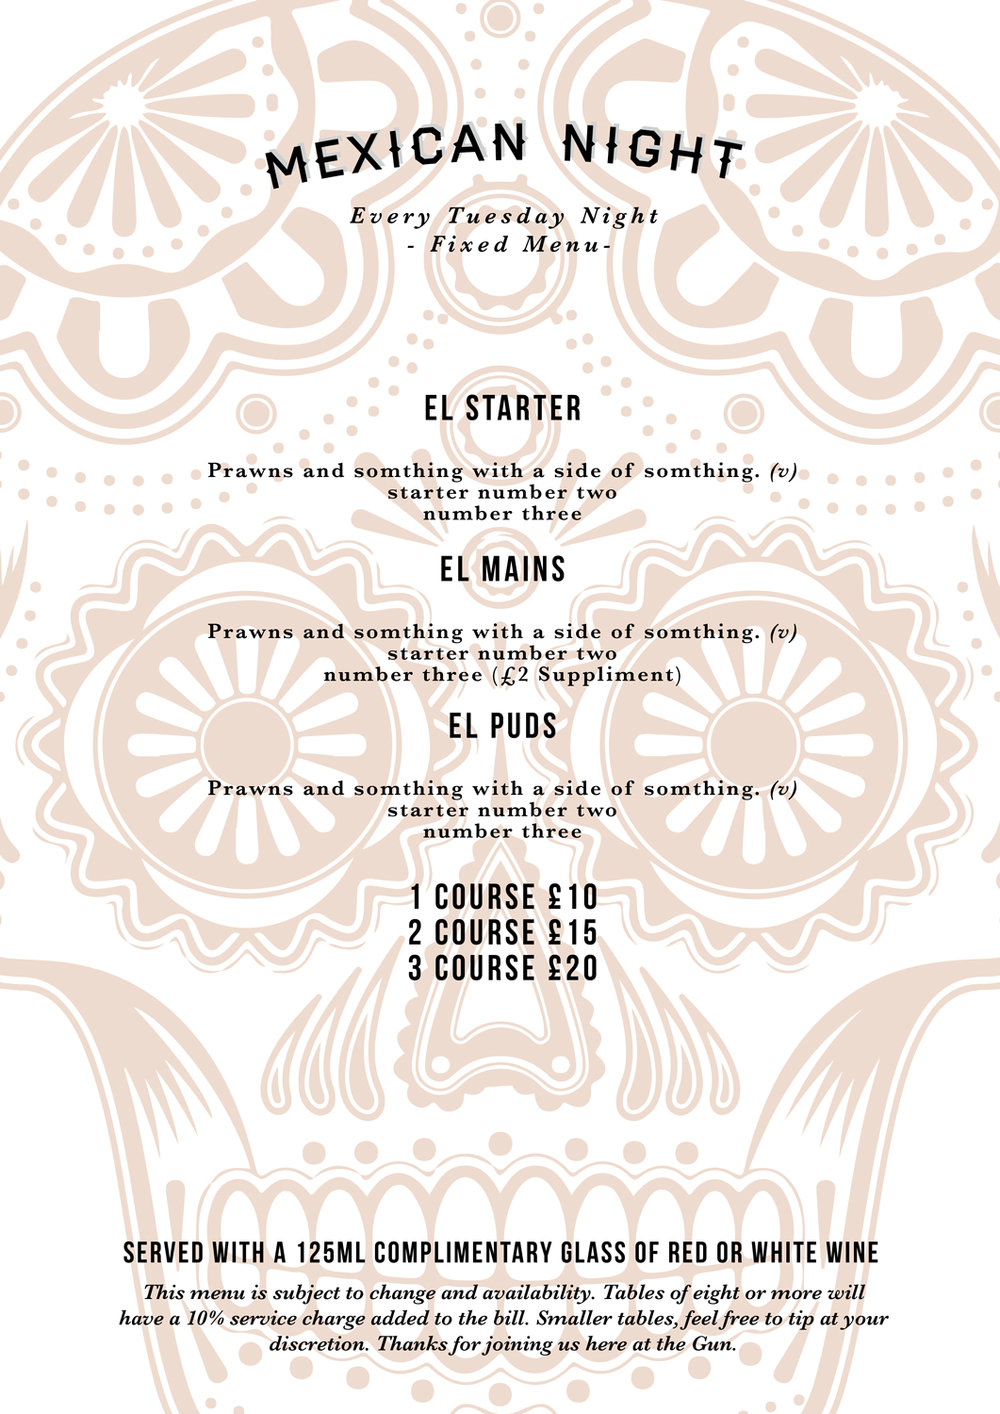 Mexican-Night-Menu-Template.jpg